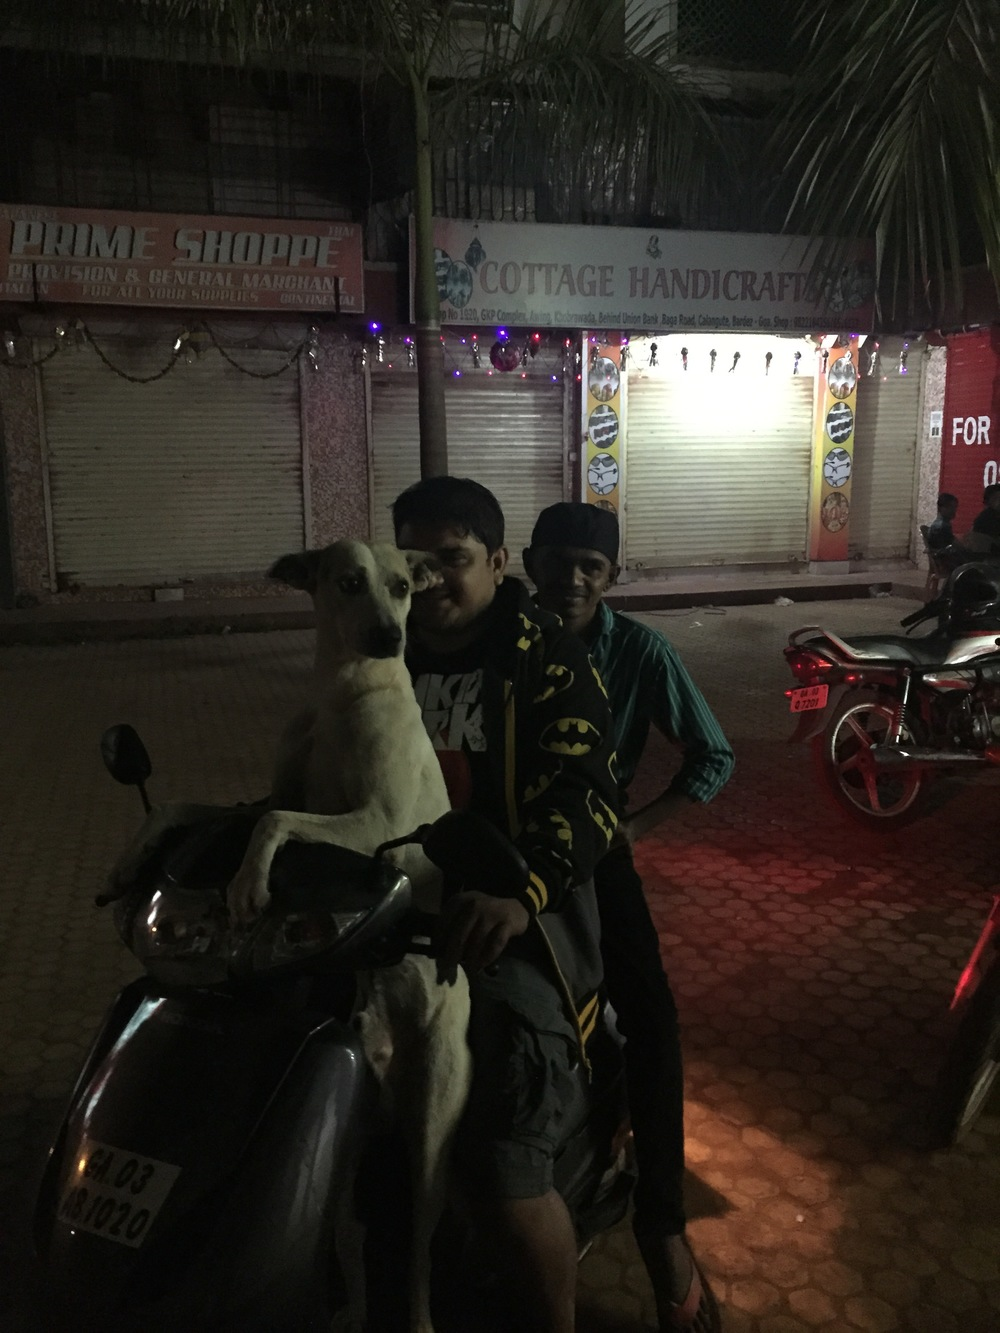 My friend has a street dog that follows him everywhere and insists on riding with him so that he can more easily follow him. During the day while the guy works at a studio, the dog sits on the seat to wait for him.